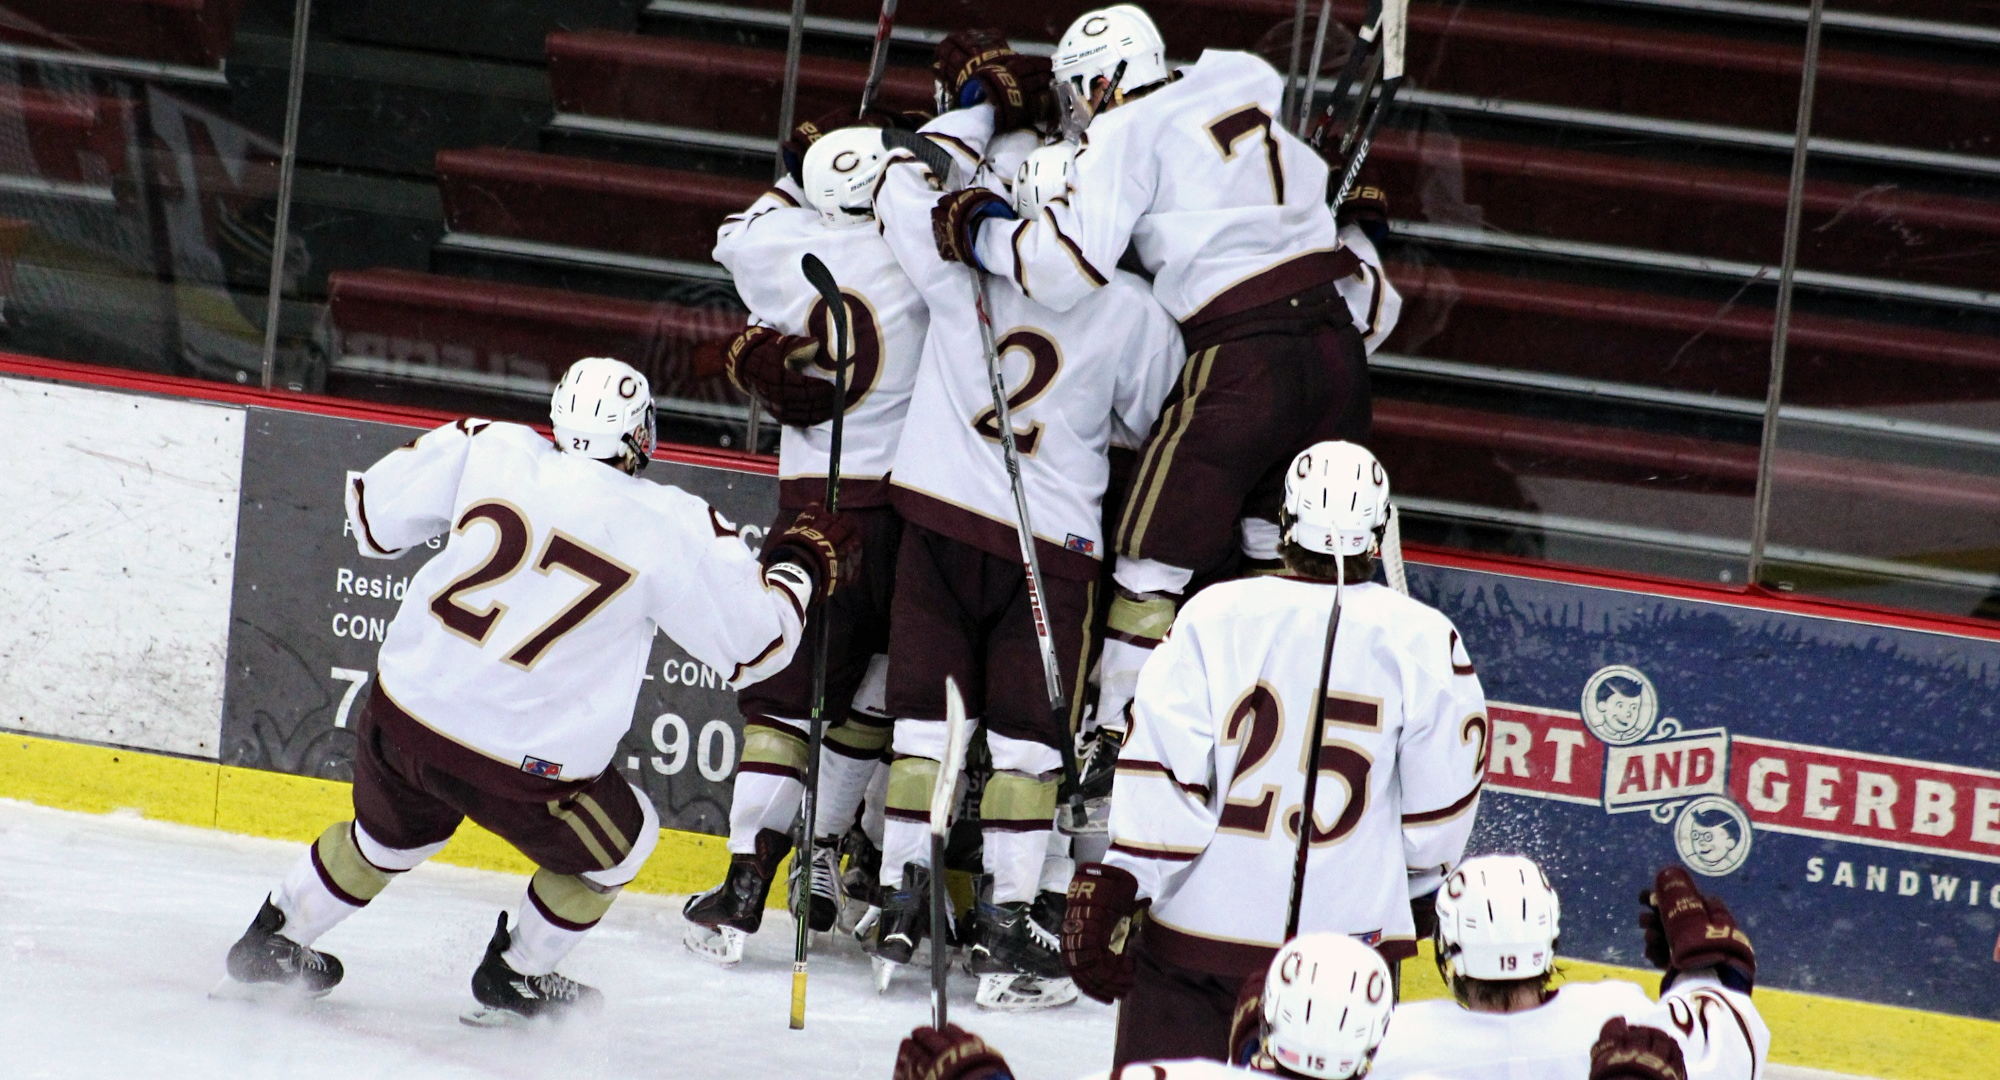 Concordia celebrates Garrett Hendrickson's game-winning goal in overtime during the team's 3-2 win over Gustavus.